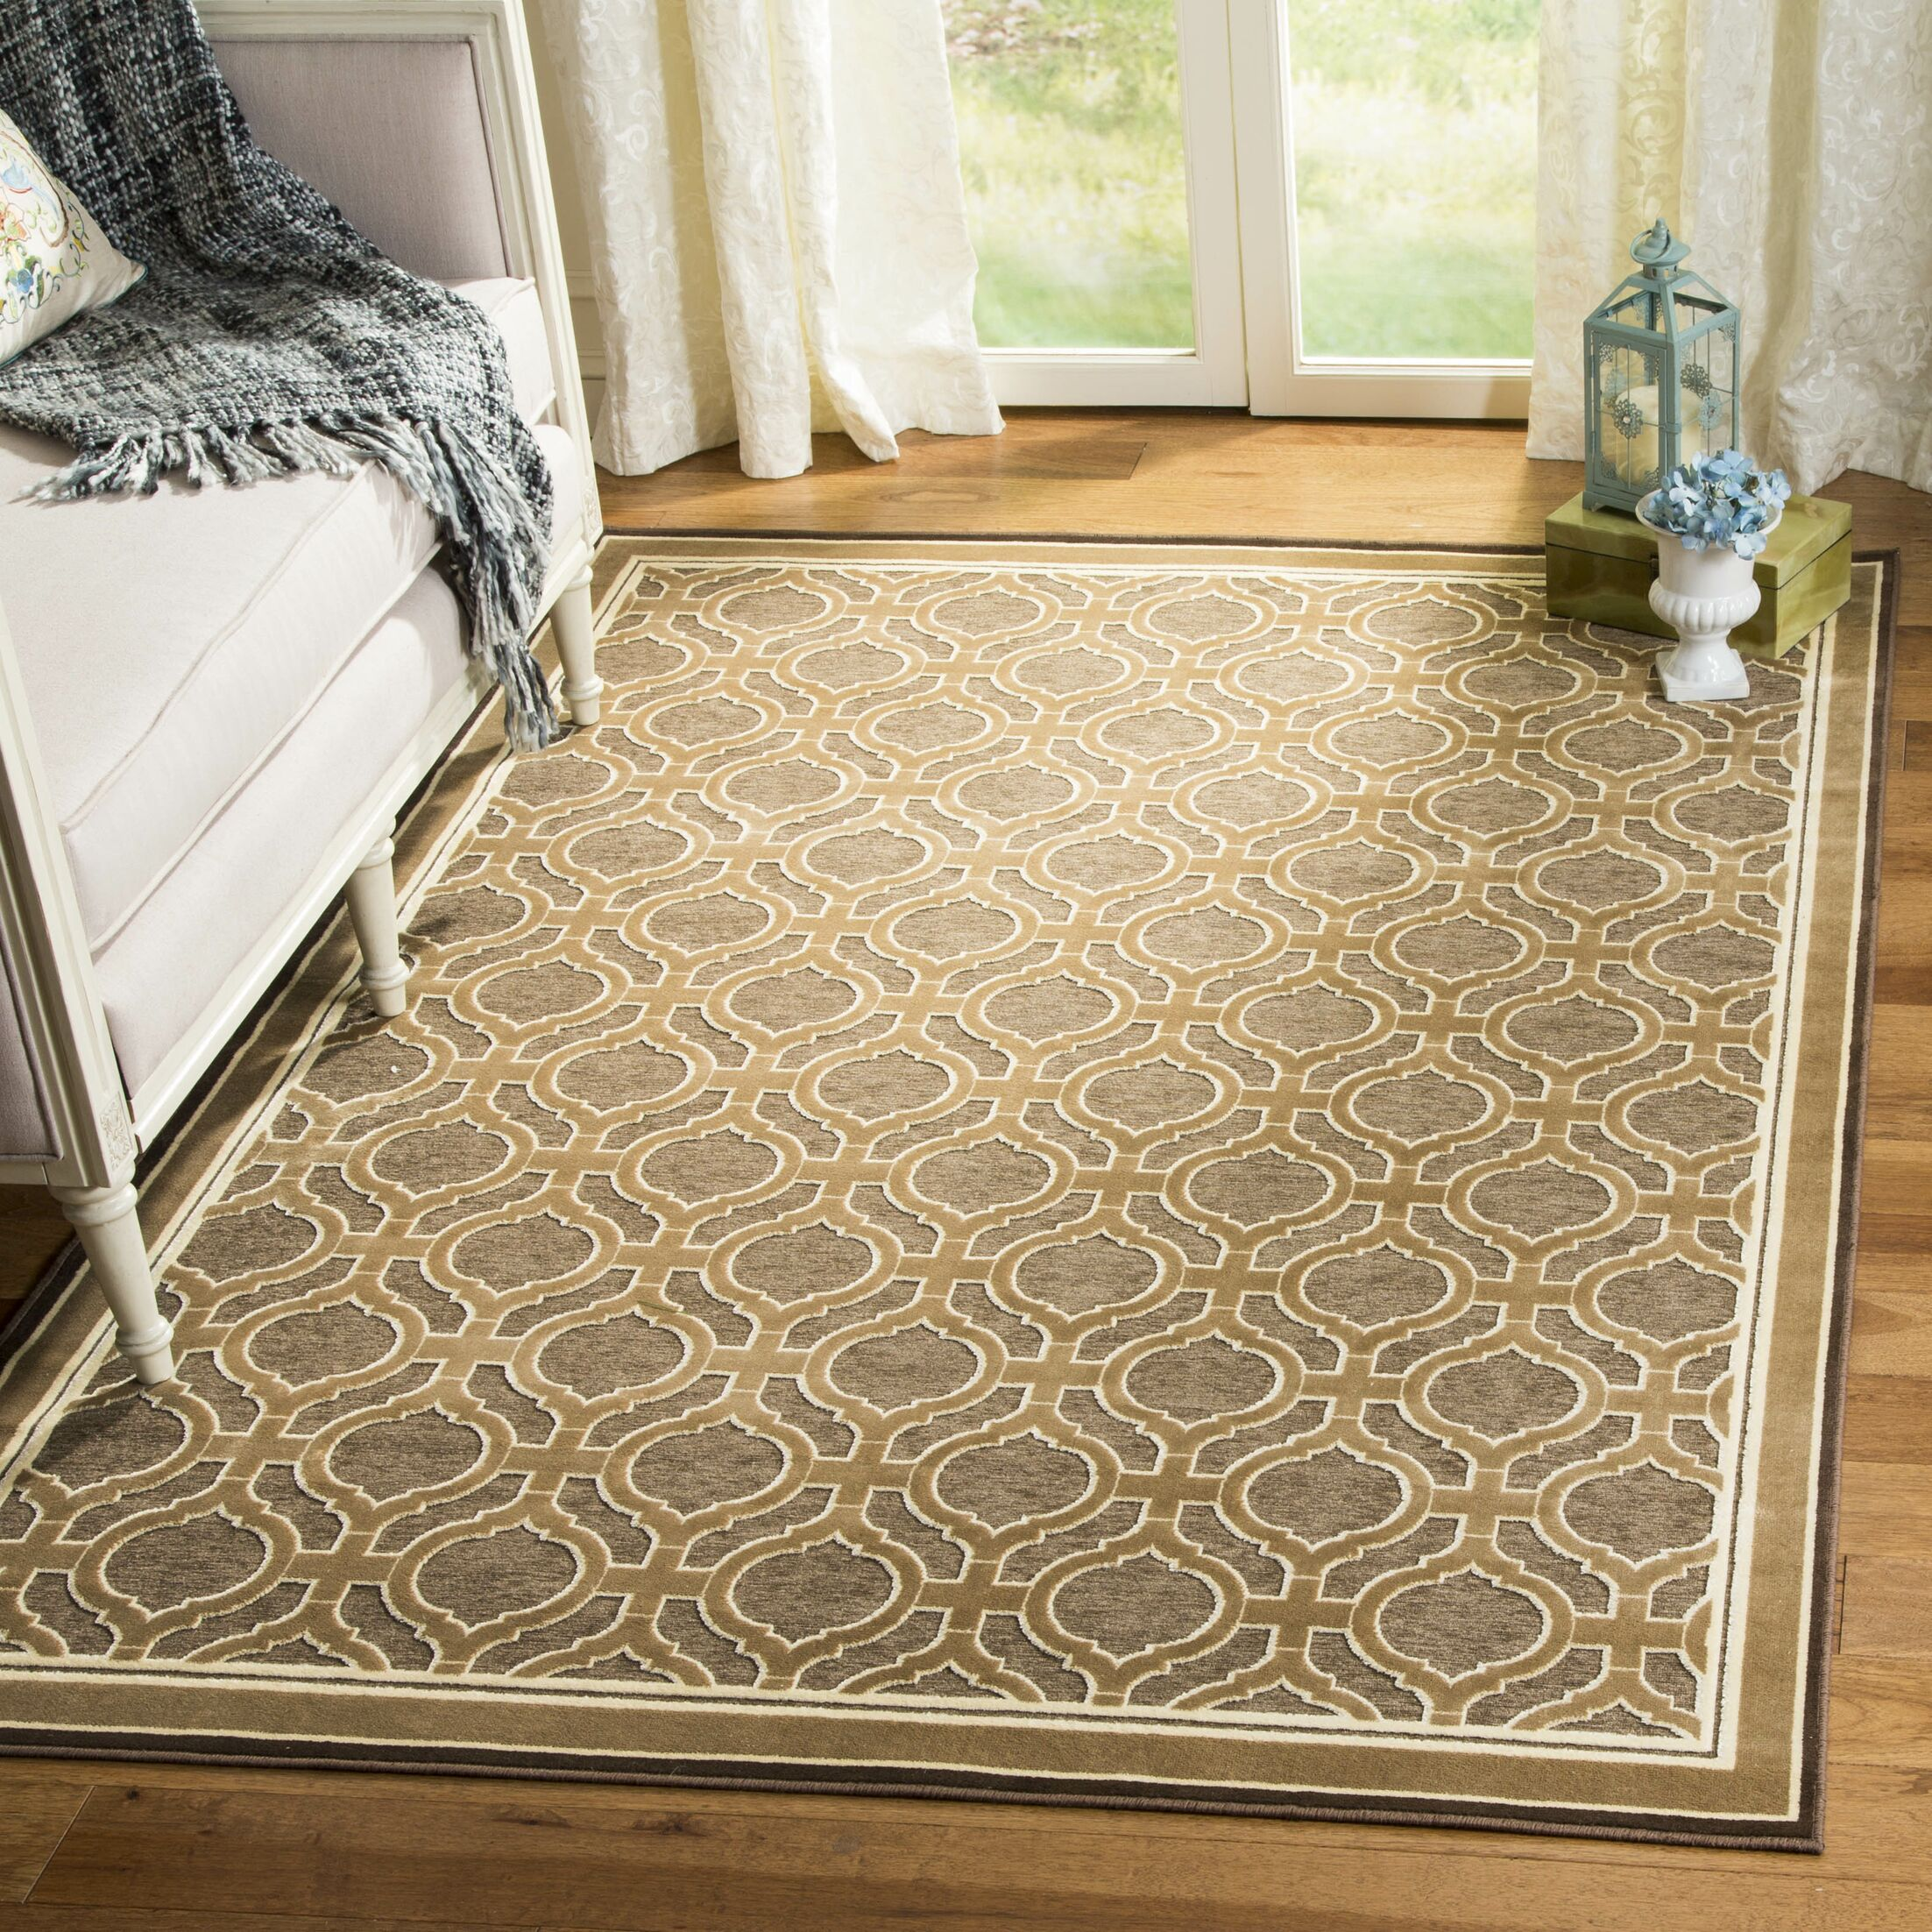 Martha Stewart Tufted / Hand Loomed Tan/Brown Area Rug Rug Size: Rectangle 8' x 11'2